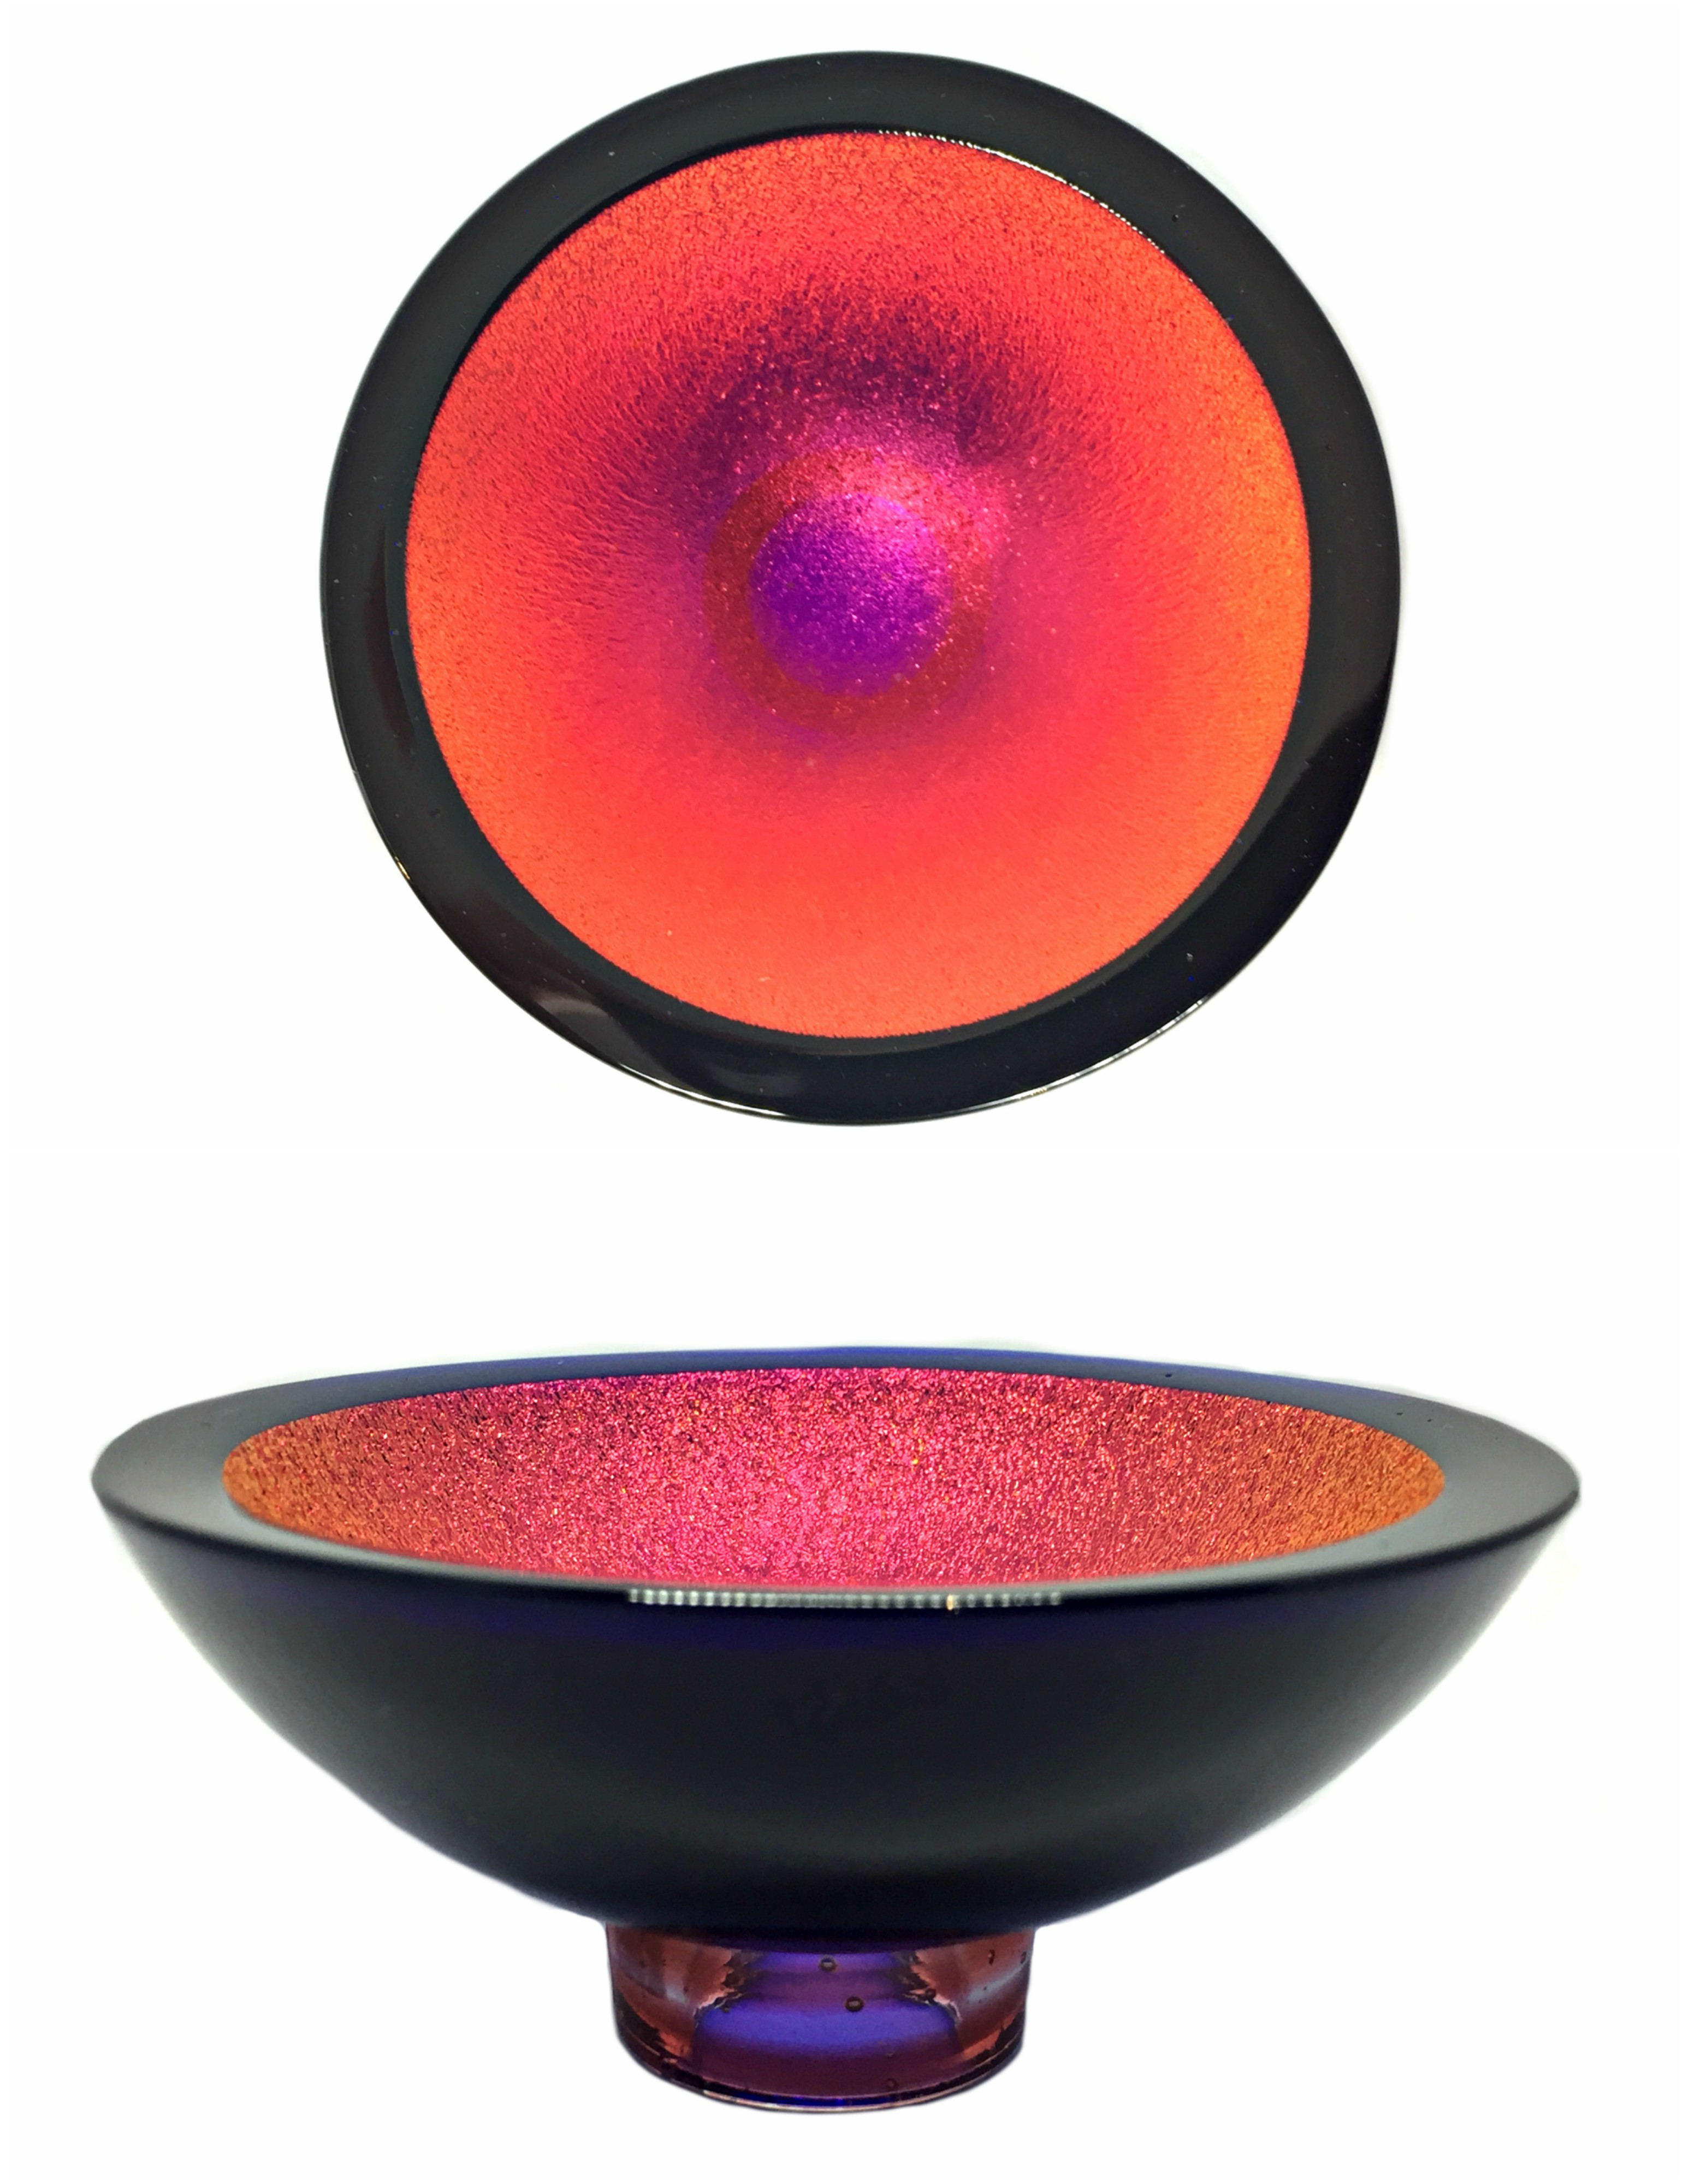 Thing of Beauty 3329 glass bowl by Jo Ludwig | Effusion Art Gallery + Cast Glass Studio, Invermere BC